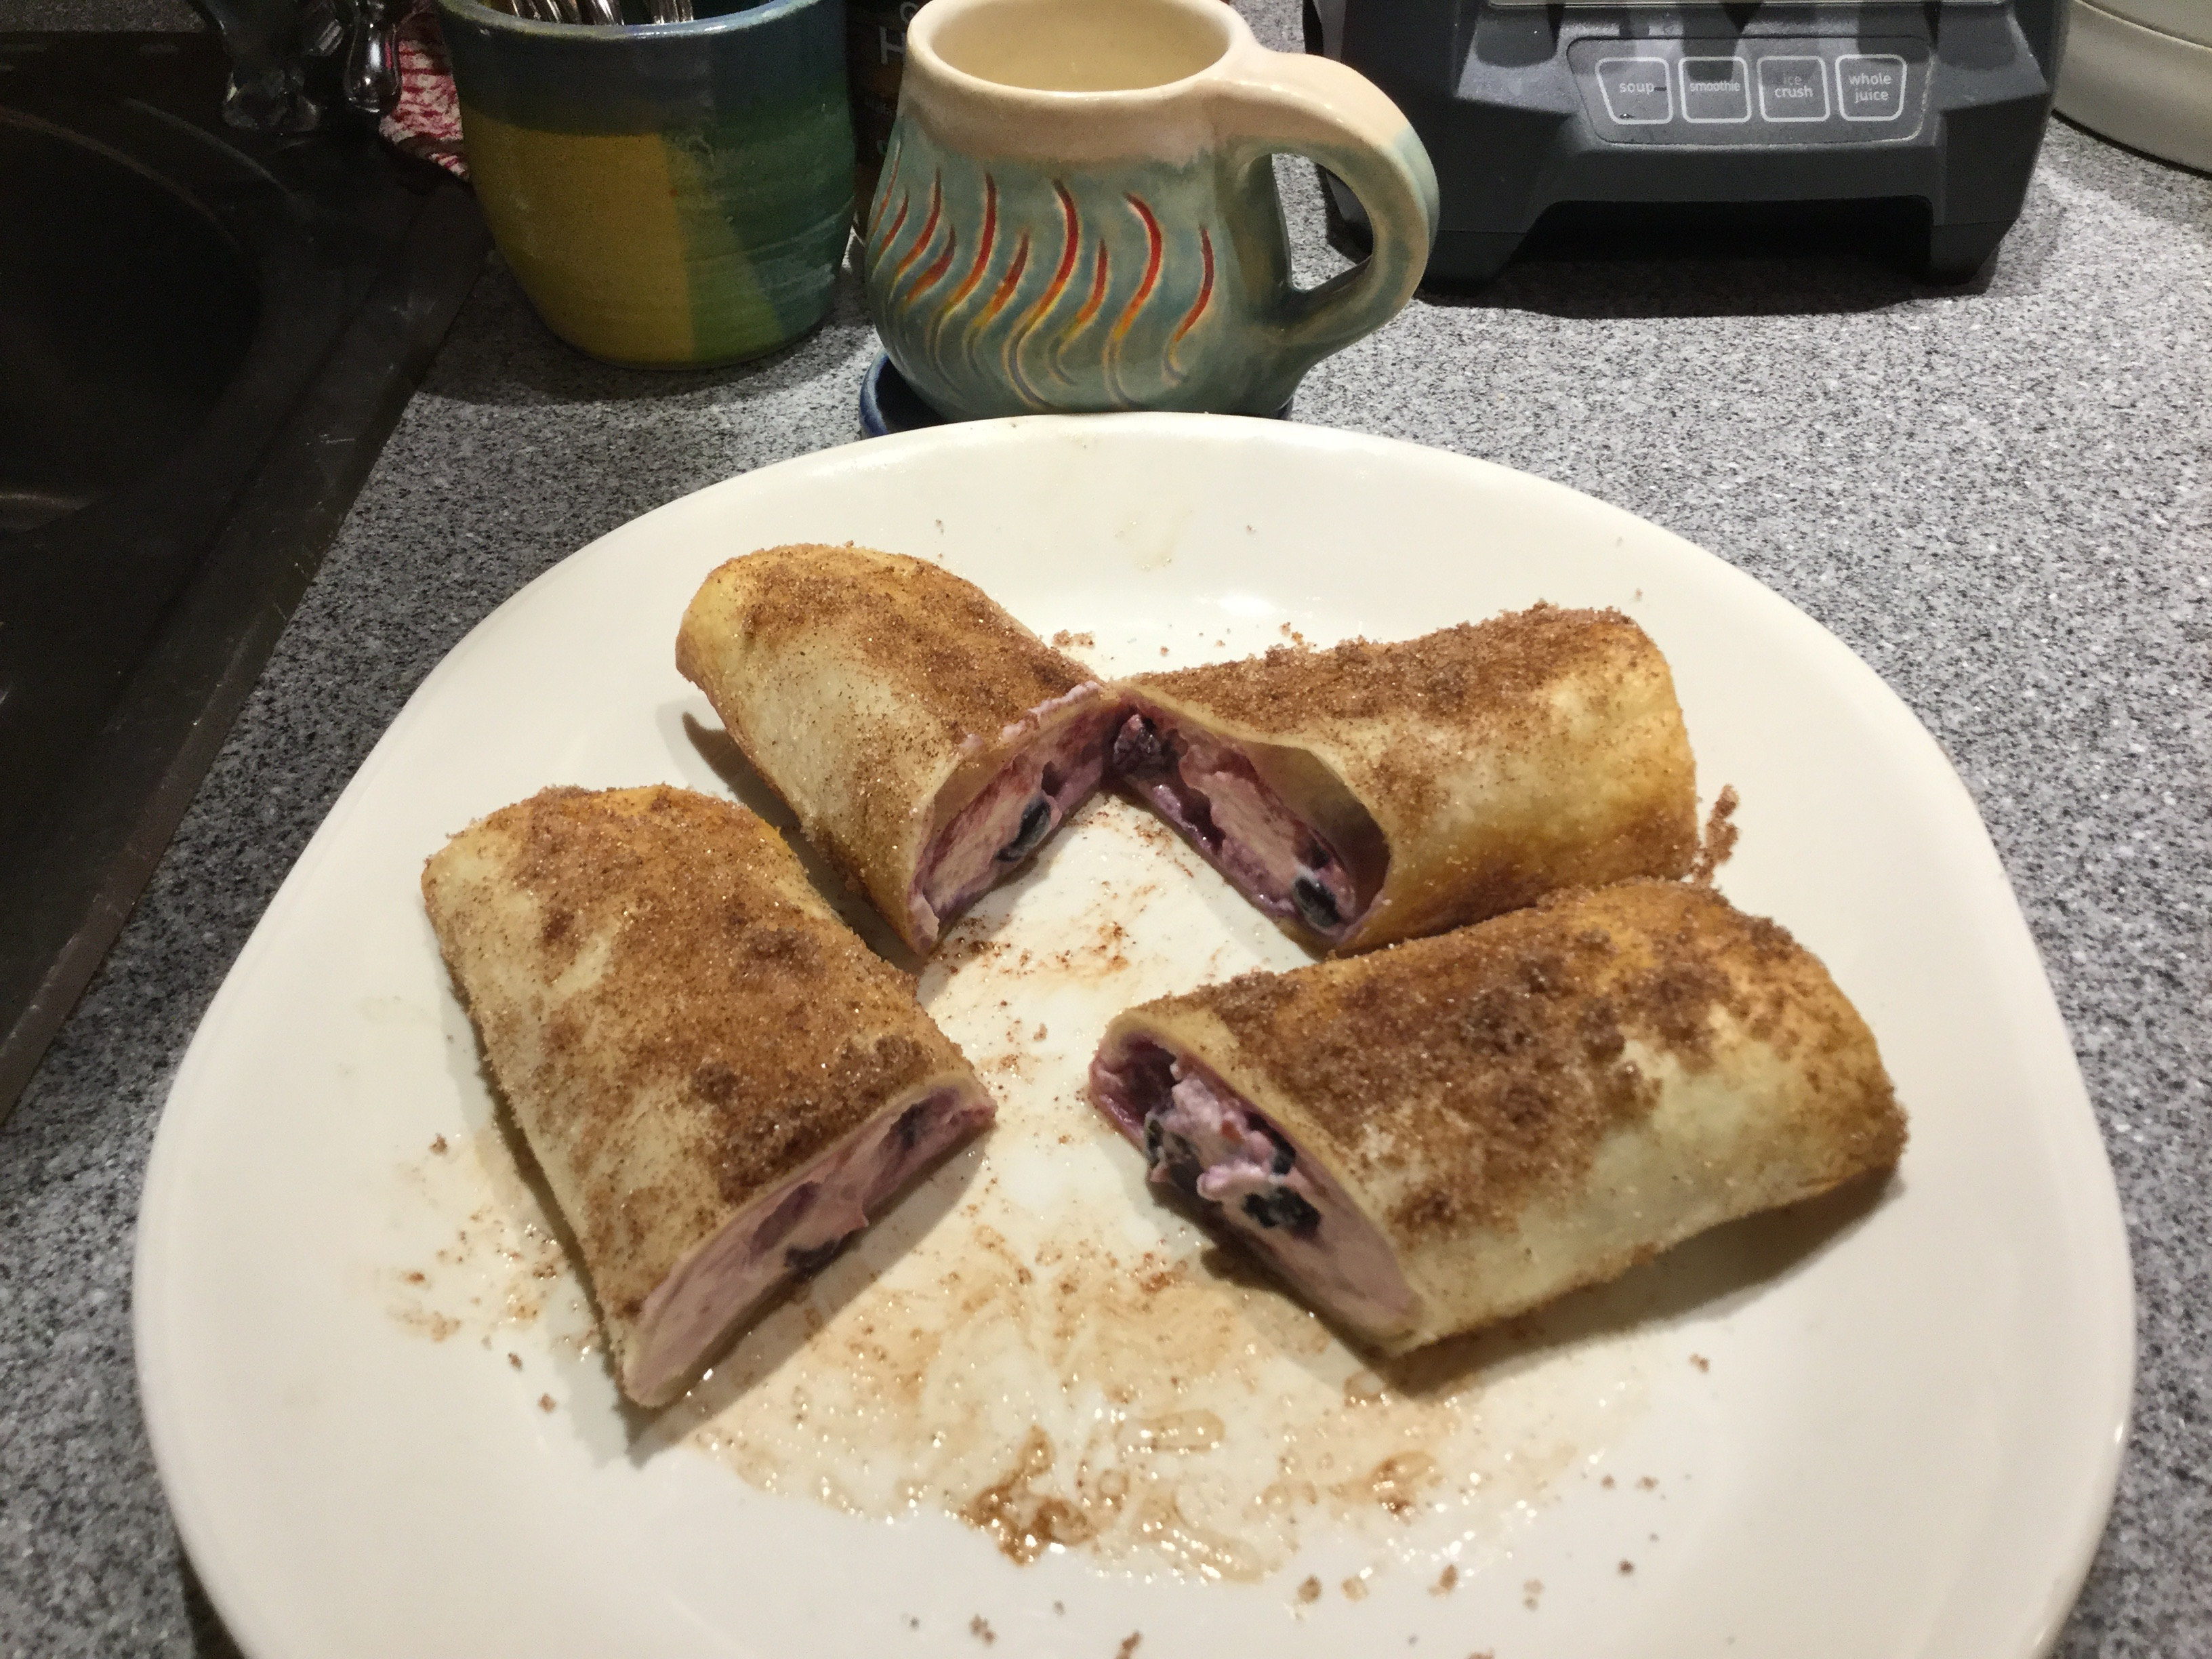 Air Fryer Blueberry Chimichangas